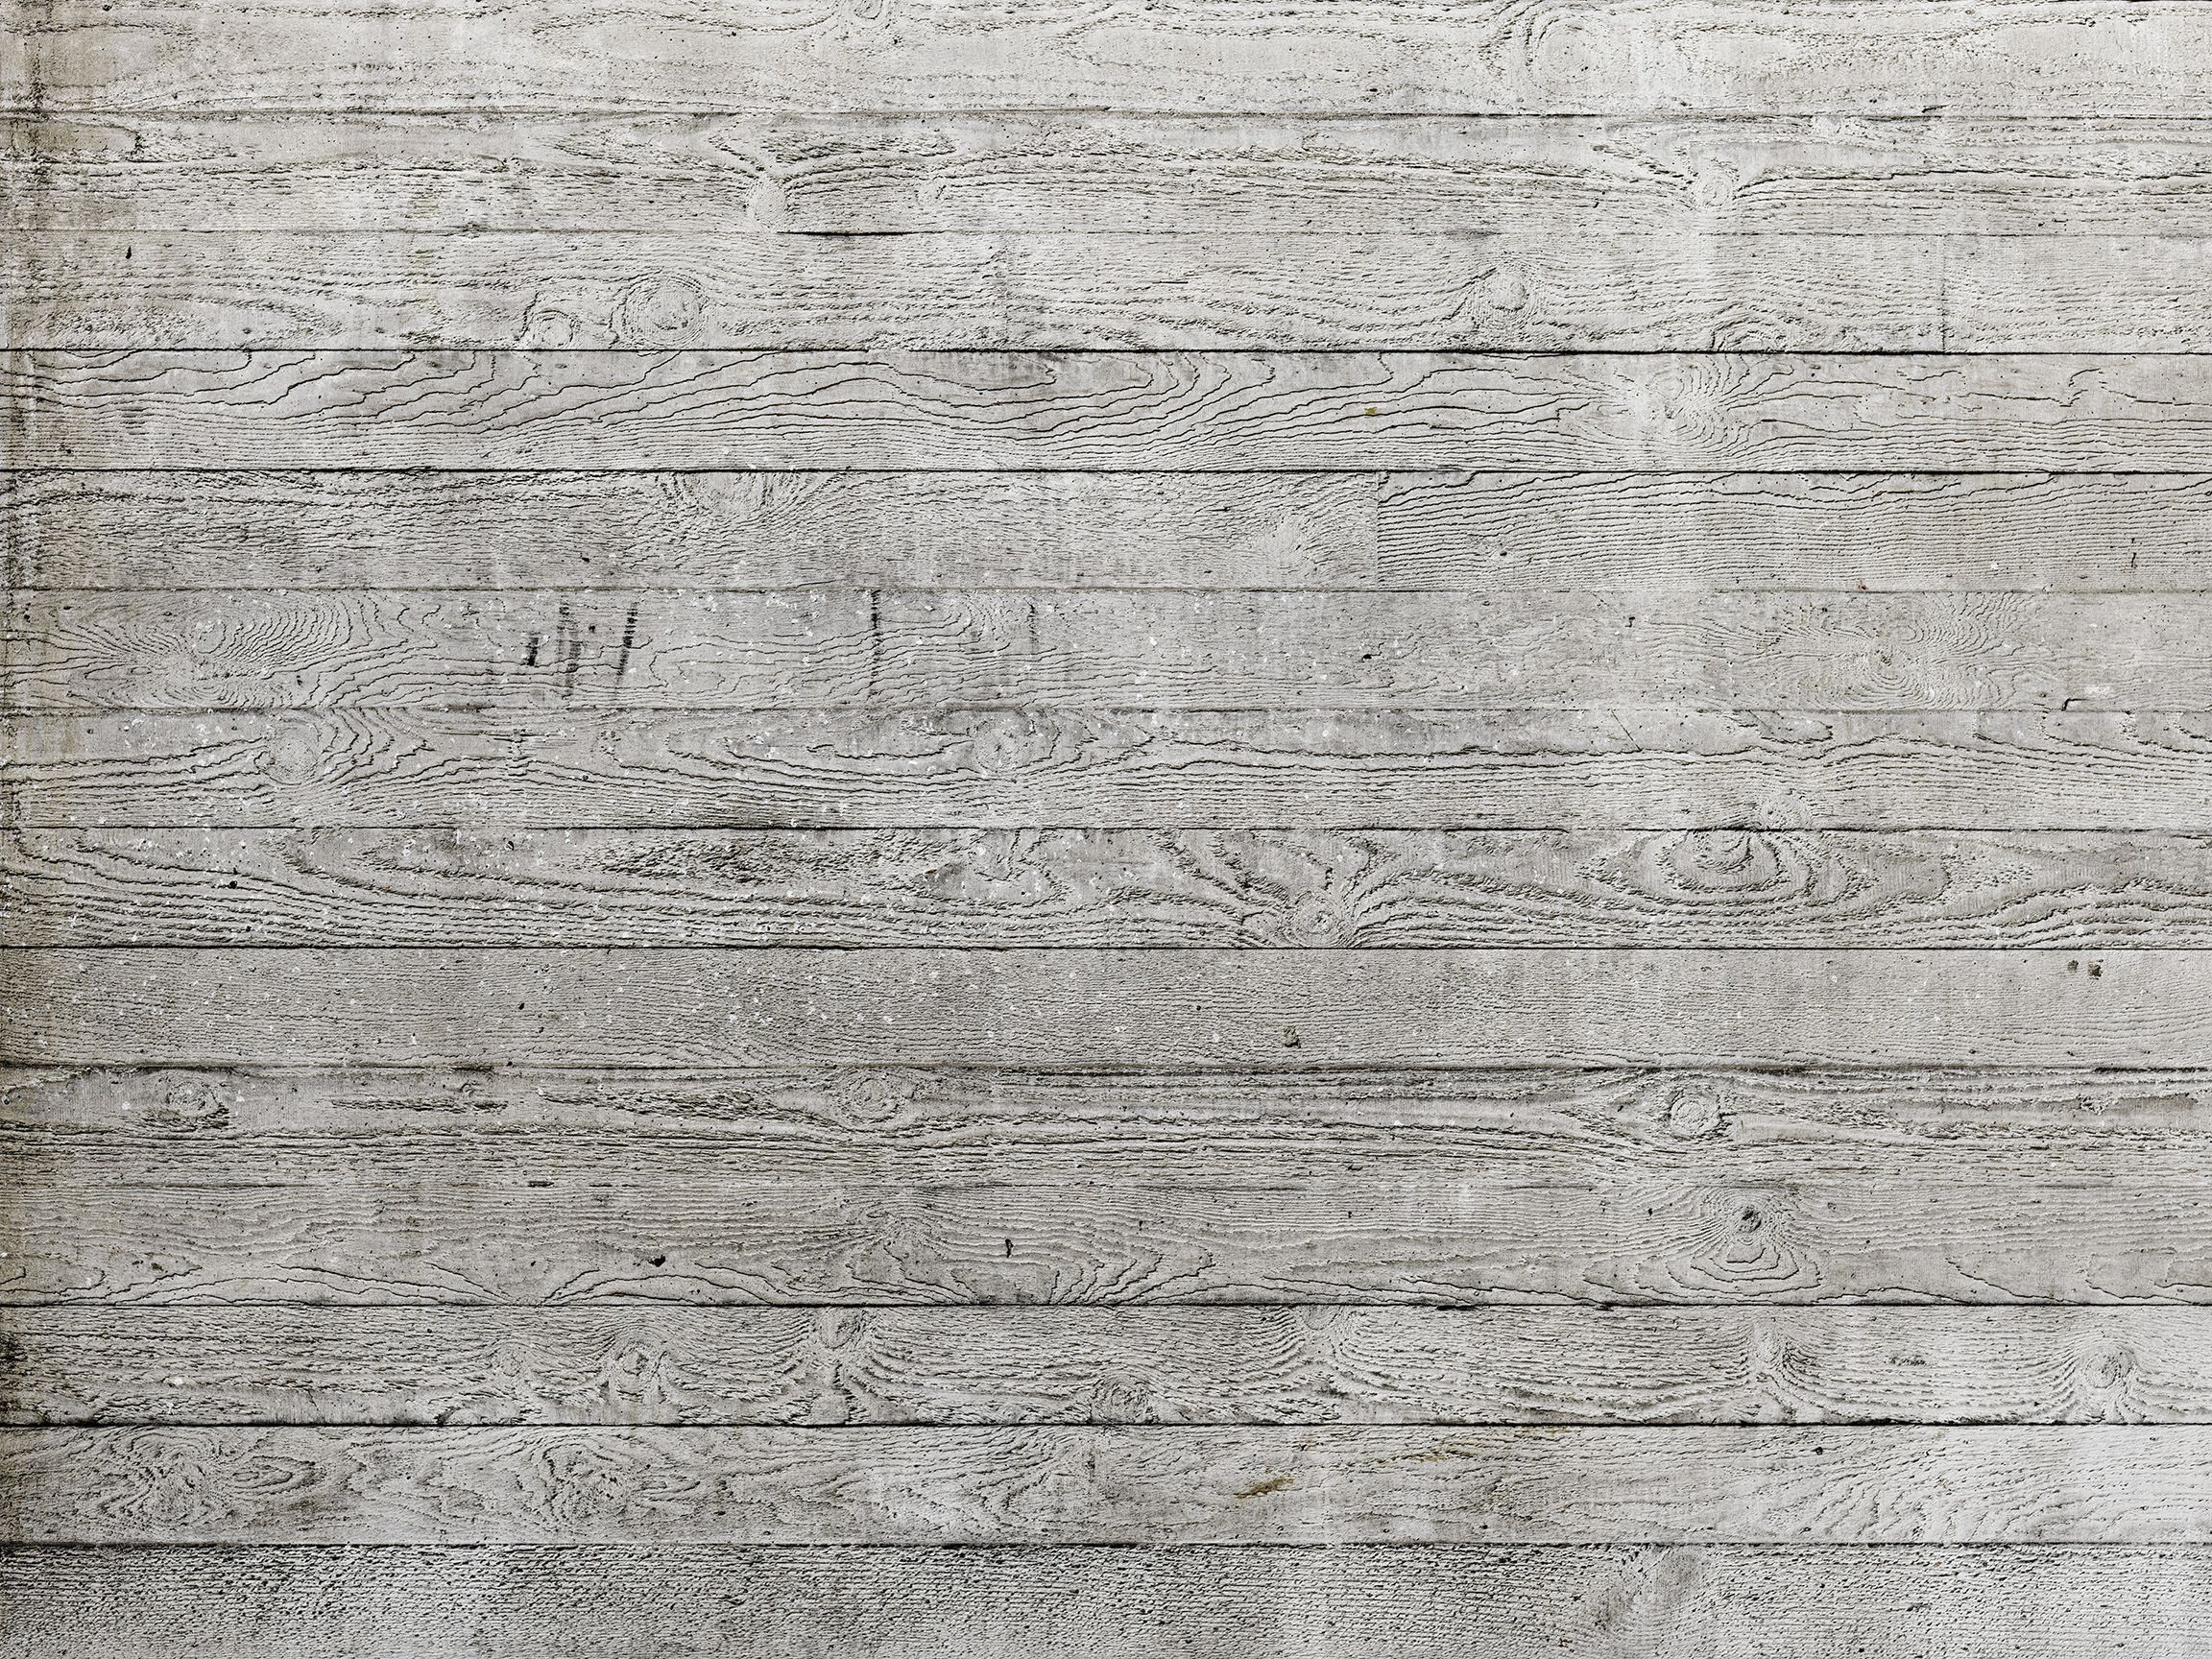 「texture Concrete Wood」的圖片搜尋結果 Texture Concrete Wood